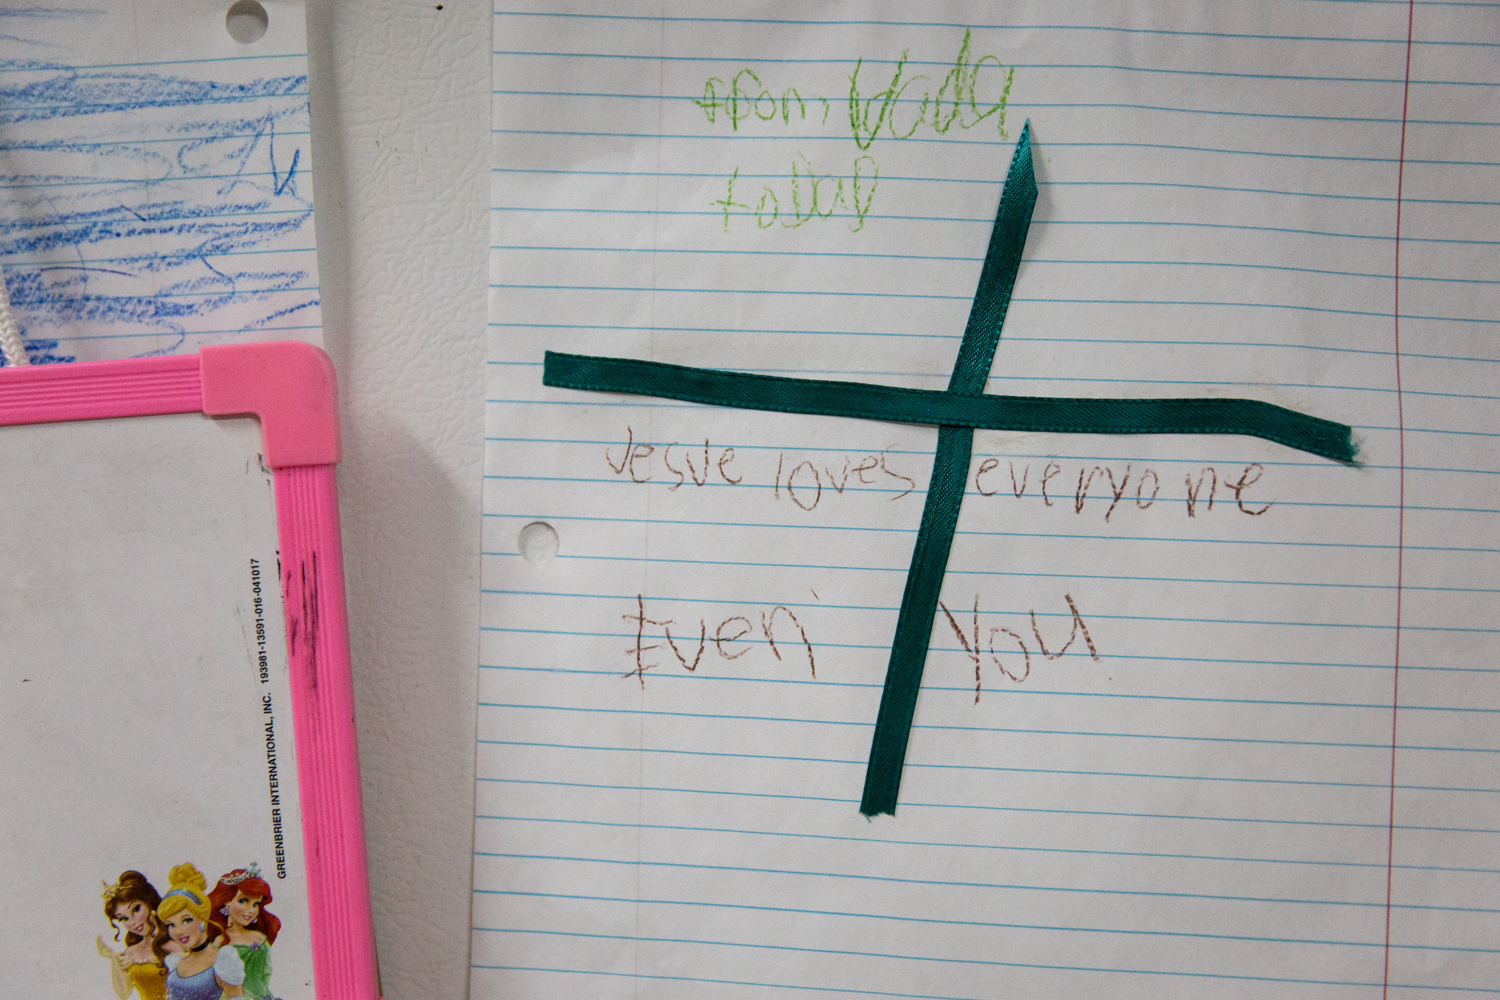 A note from Jeremy's daughter Vada hangs on the fridge. Whitney says that Vada is Jeremy's favorite.